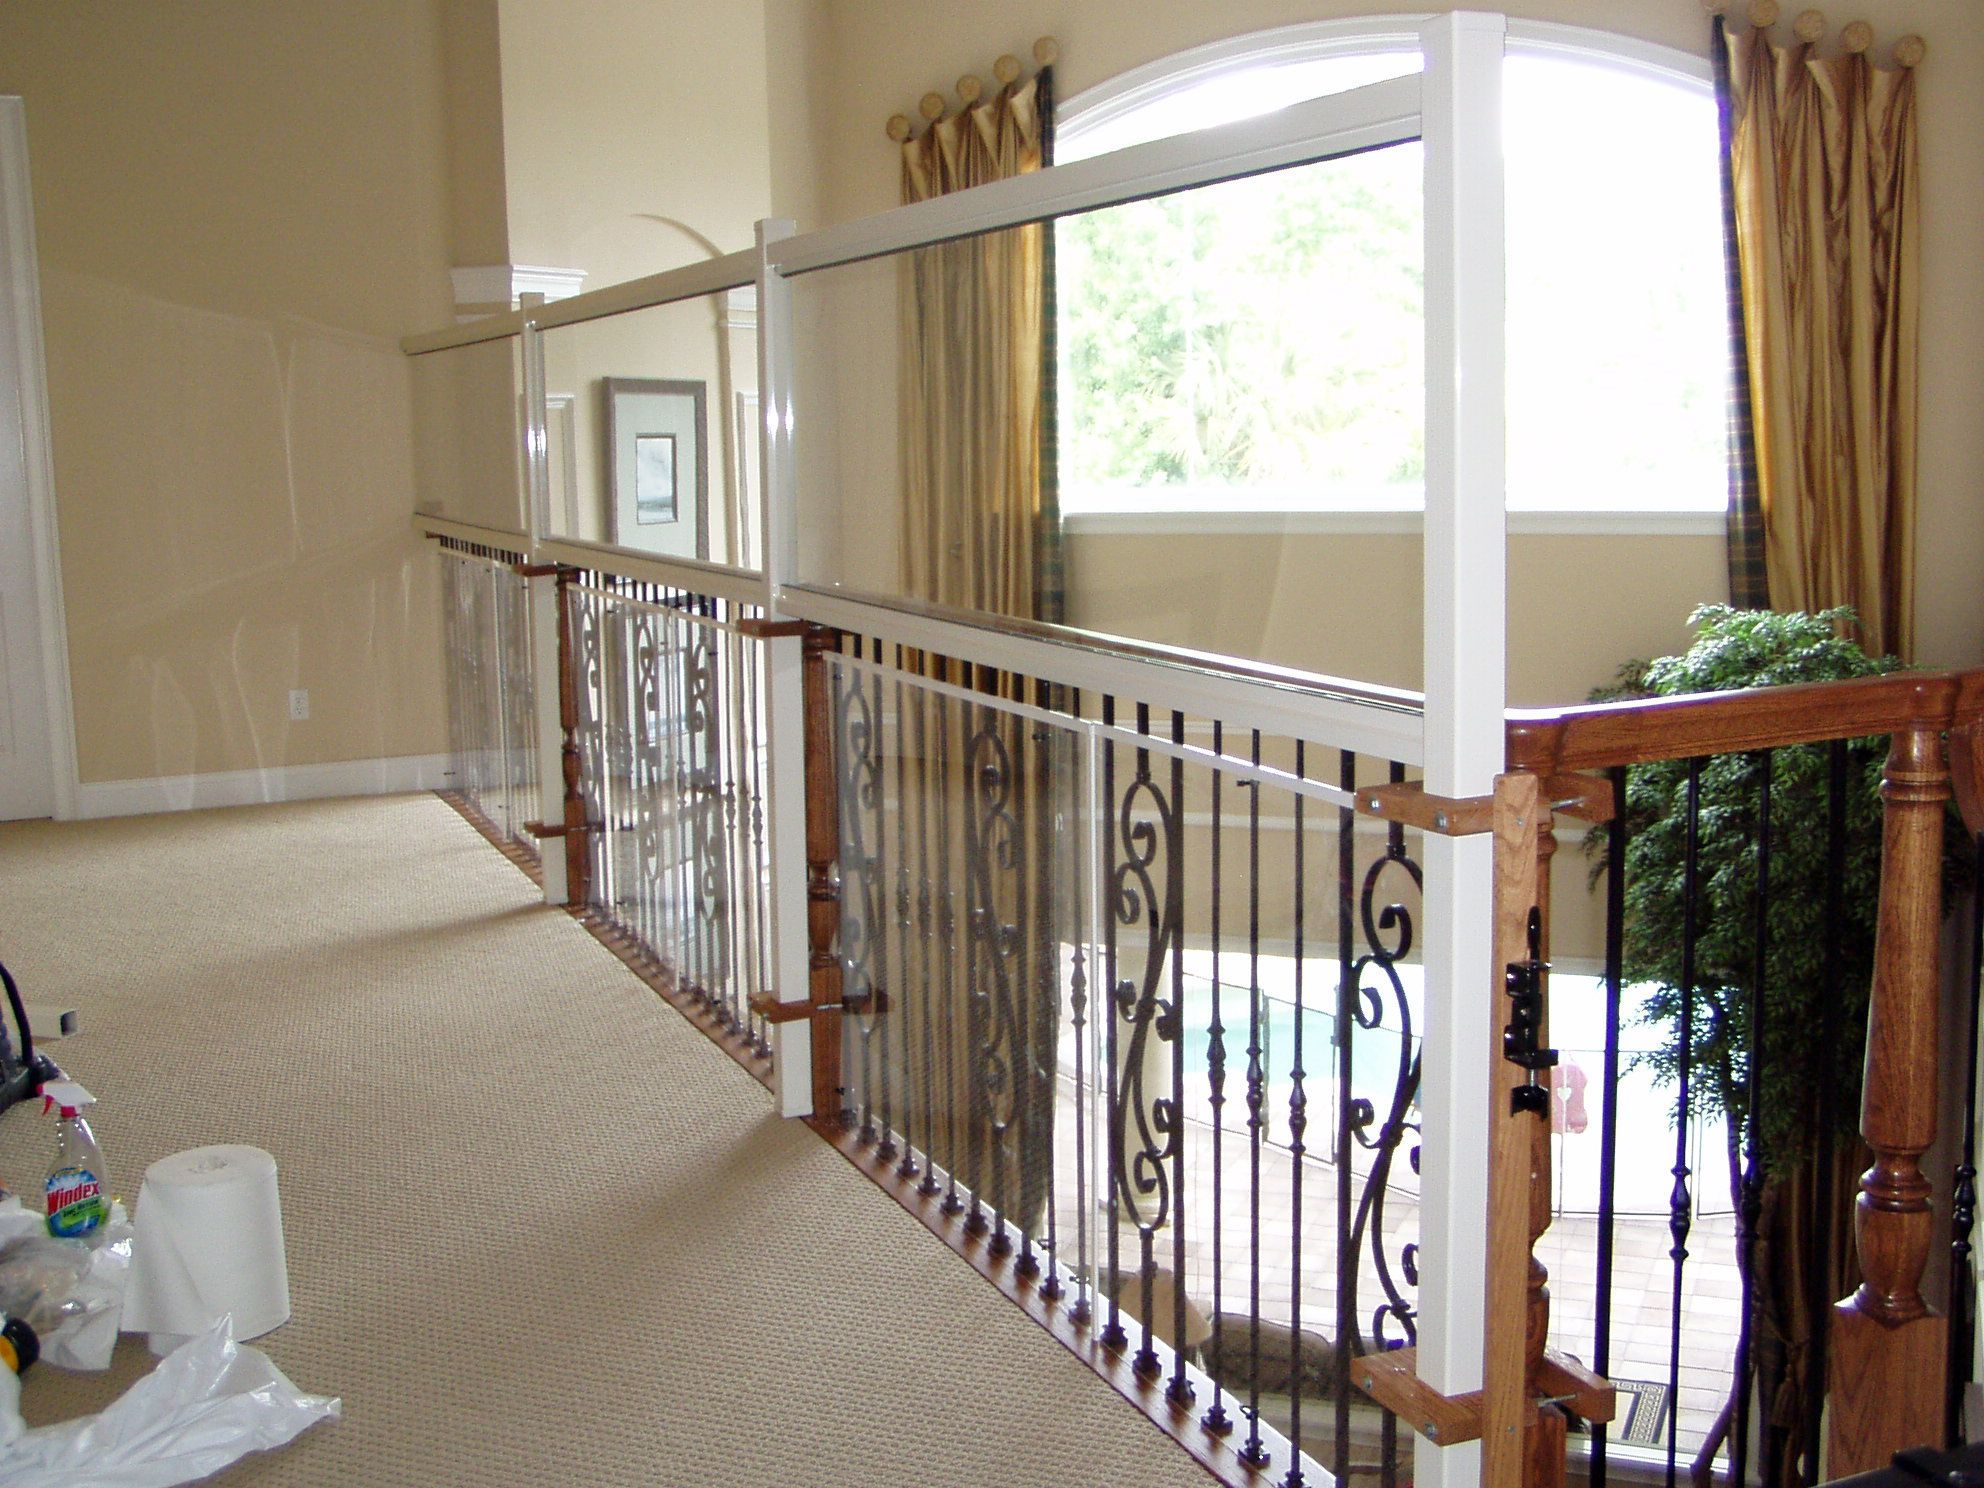 Banister Safety.After Safety Wall Window baby, Indoor